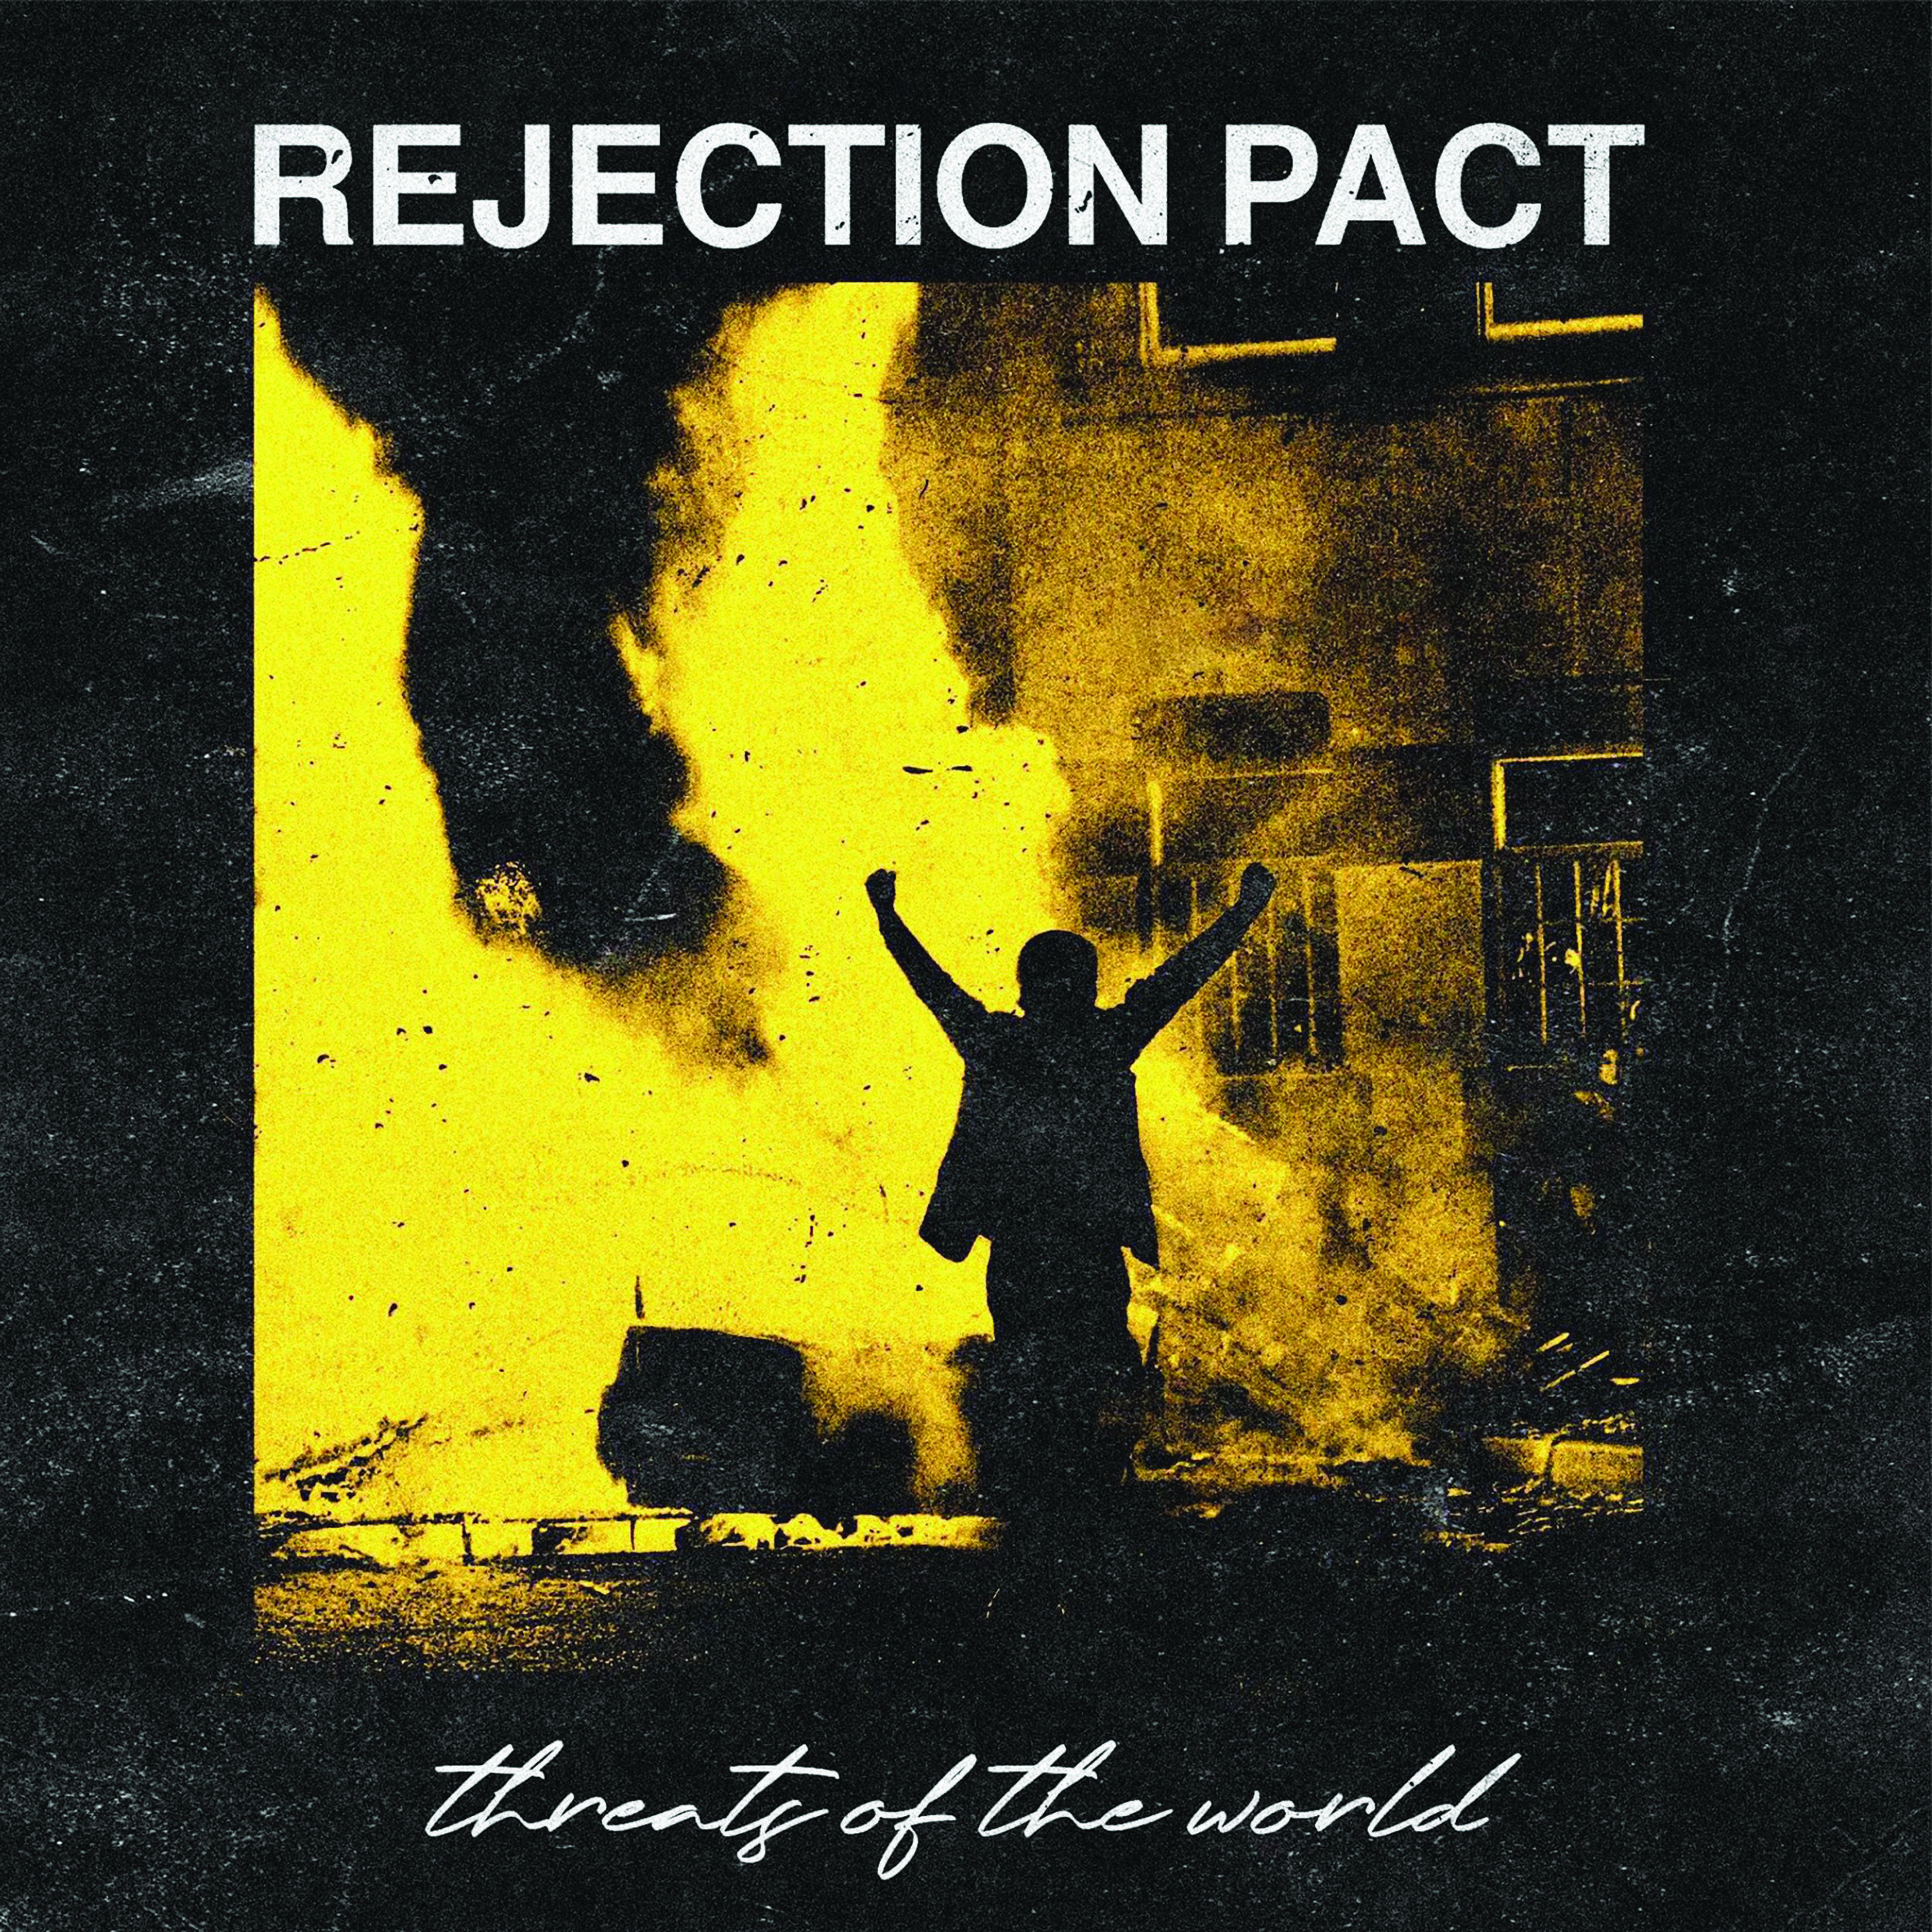 rejectionpact-cover-4000 (1).jpg